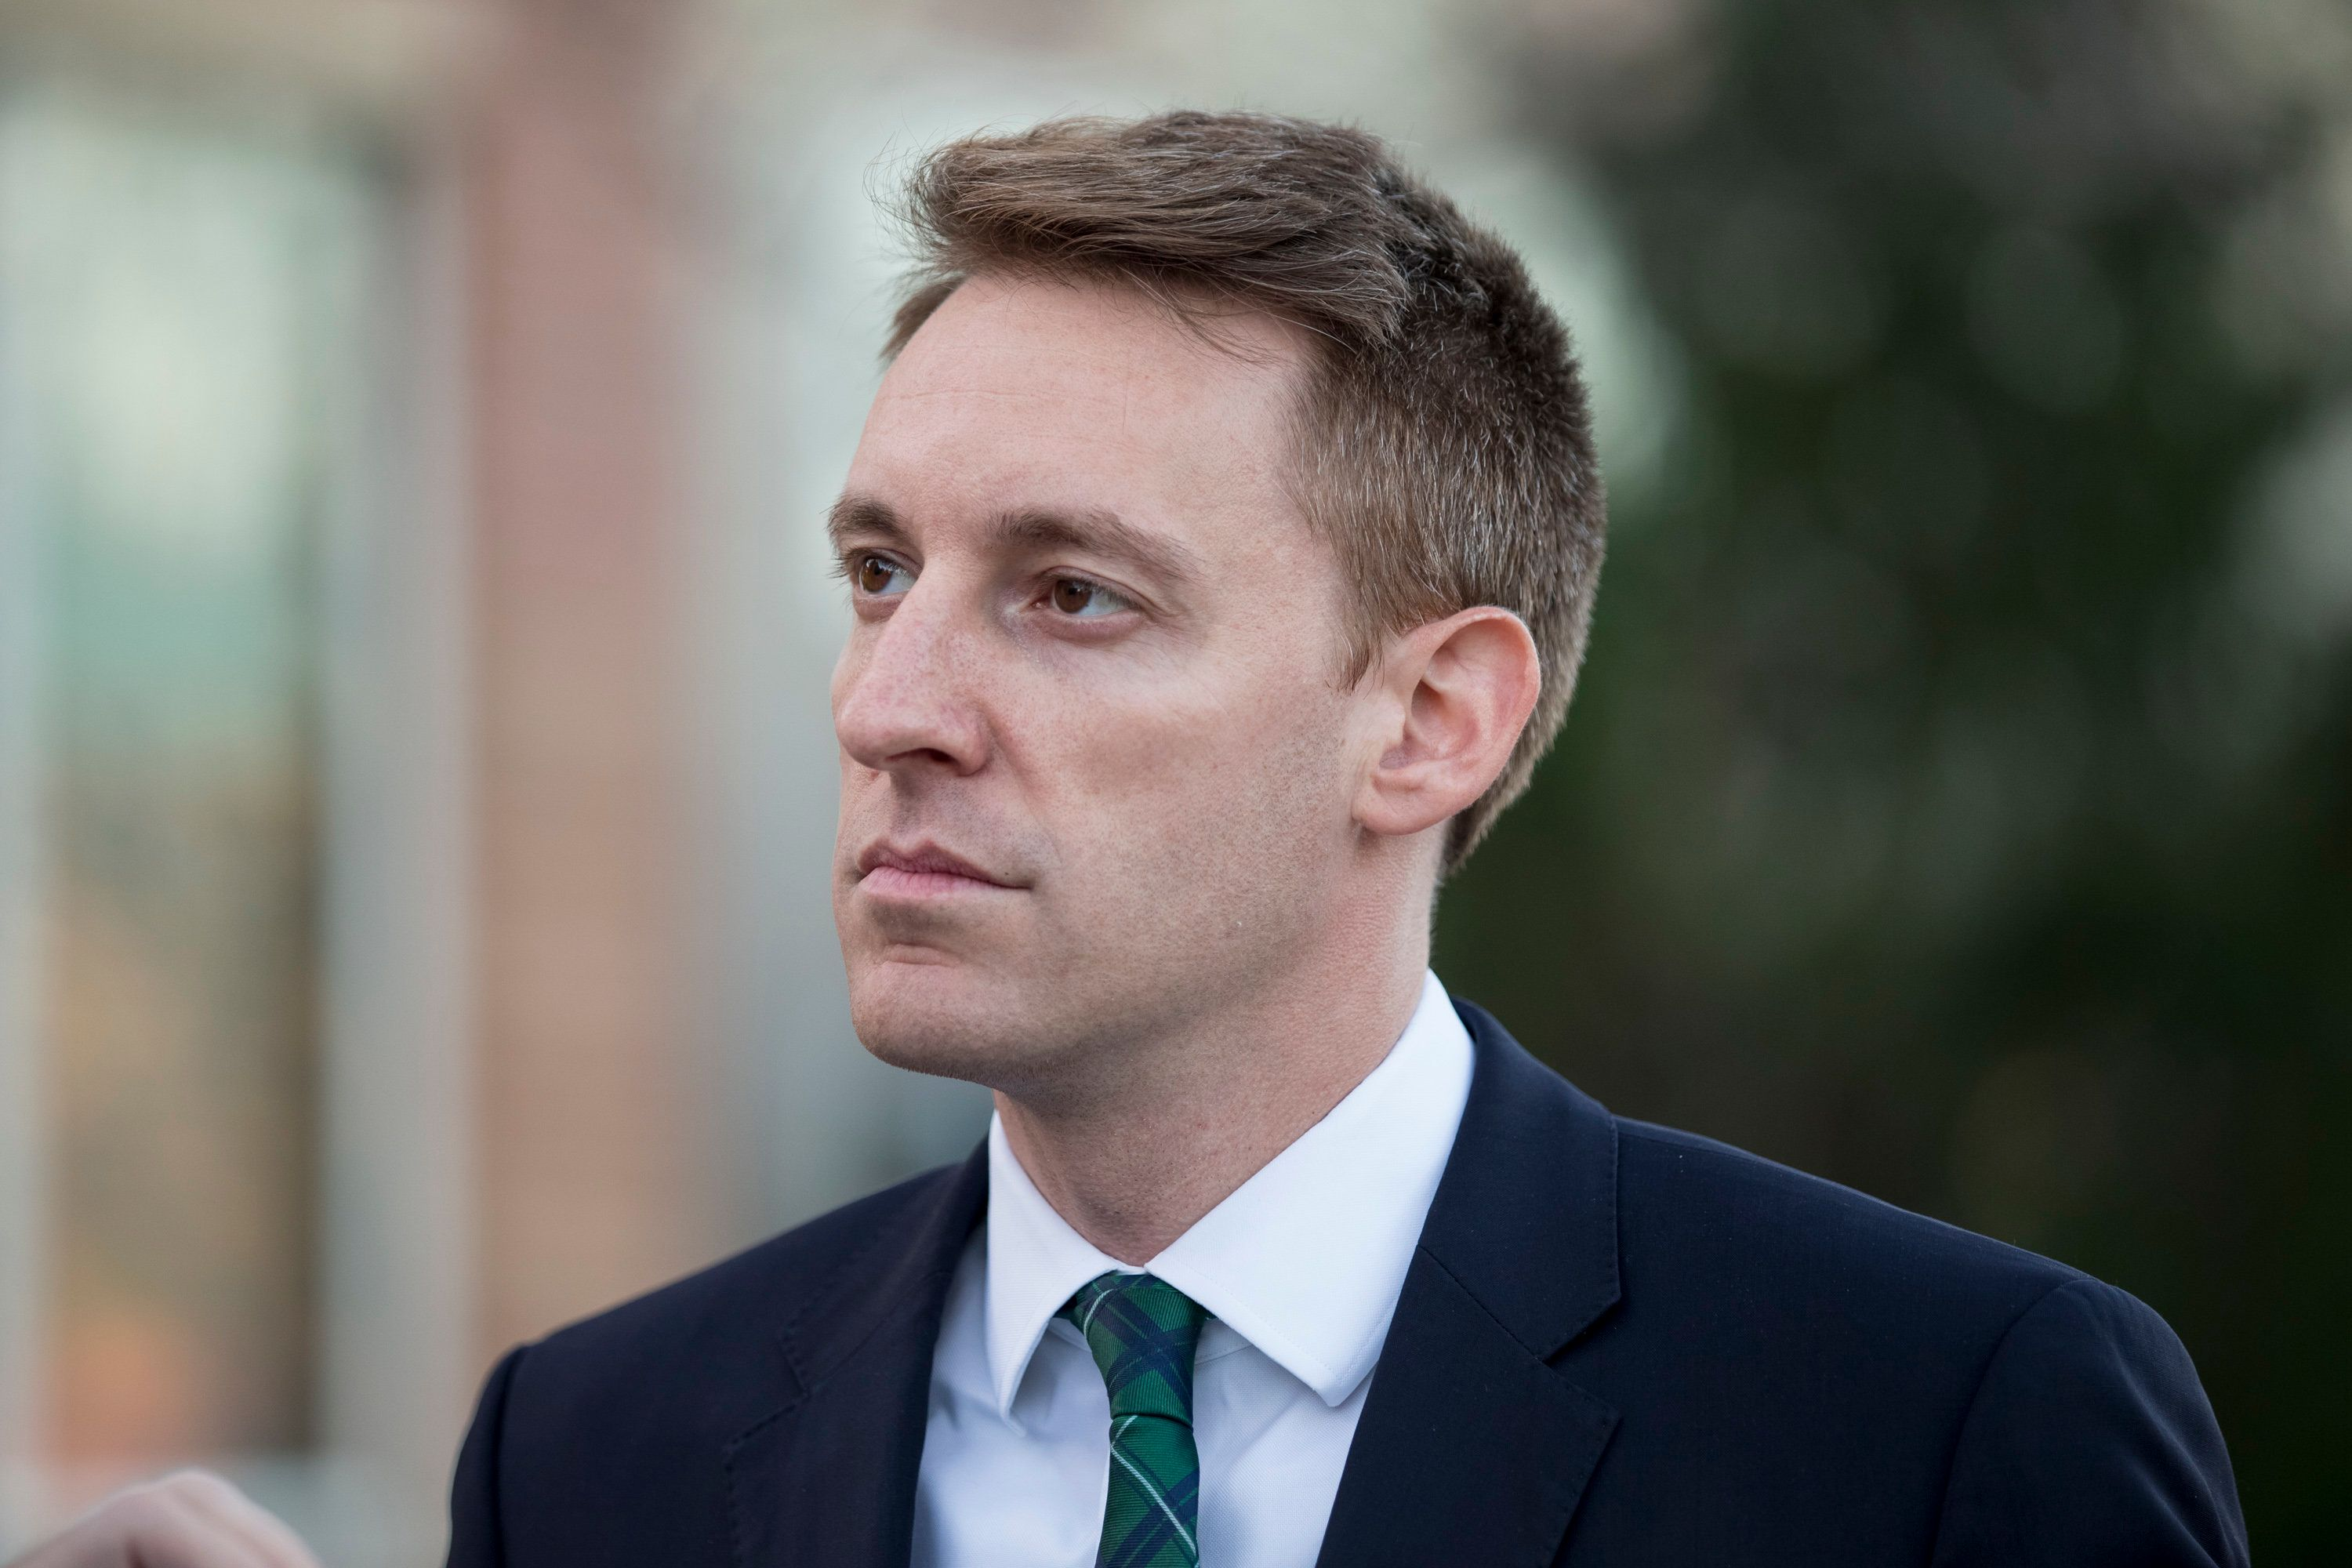 KANSAS CITY, MO - NOVEMBER 08: Democratic candidate for U.S. Senate in Missouri Jason Kander speaks with members of the media on November 8, 2016 outside a polling place in Kansas City, Missouri. Kander is attempting to unseat incumbent Republican Sen. Roy Blunt. (Photo by Whitney Curtis/Getty Images)